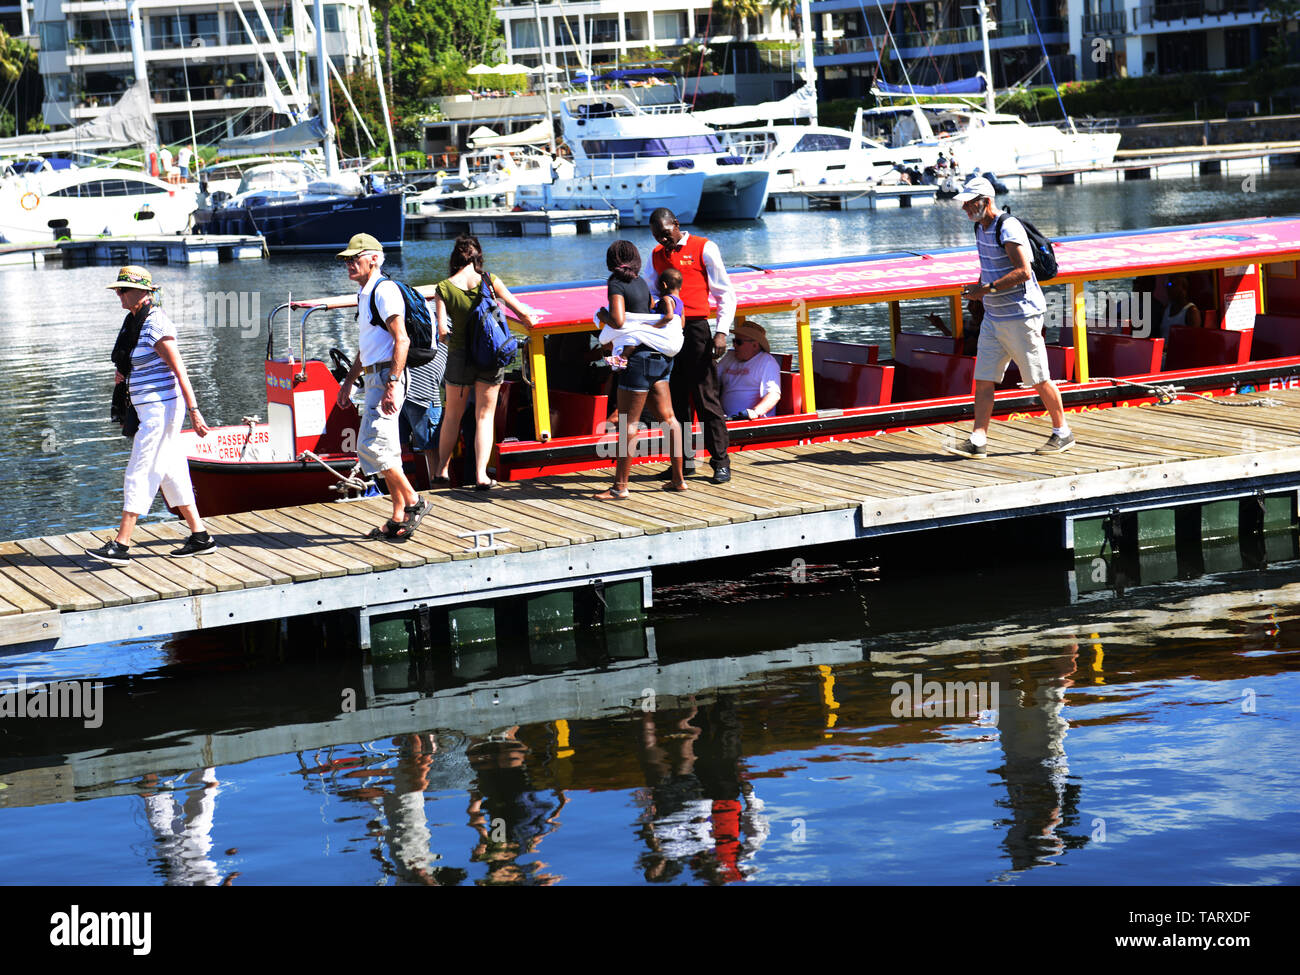 Tourist getting off the harbour tour boat in the marina by the V&A waterfront in Cape Town. - Stock Image